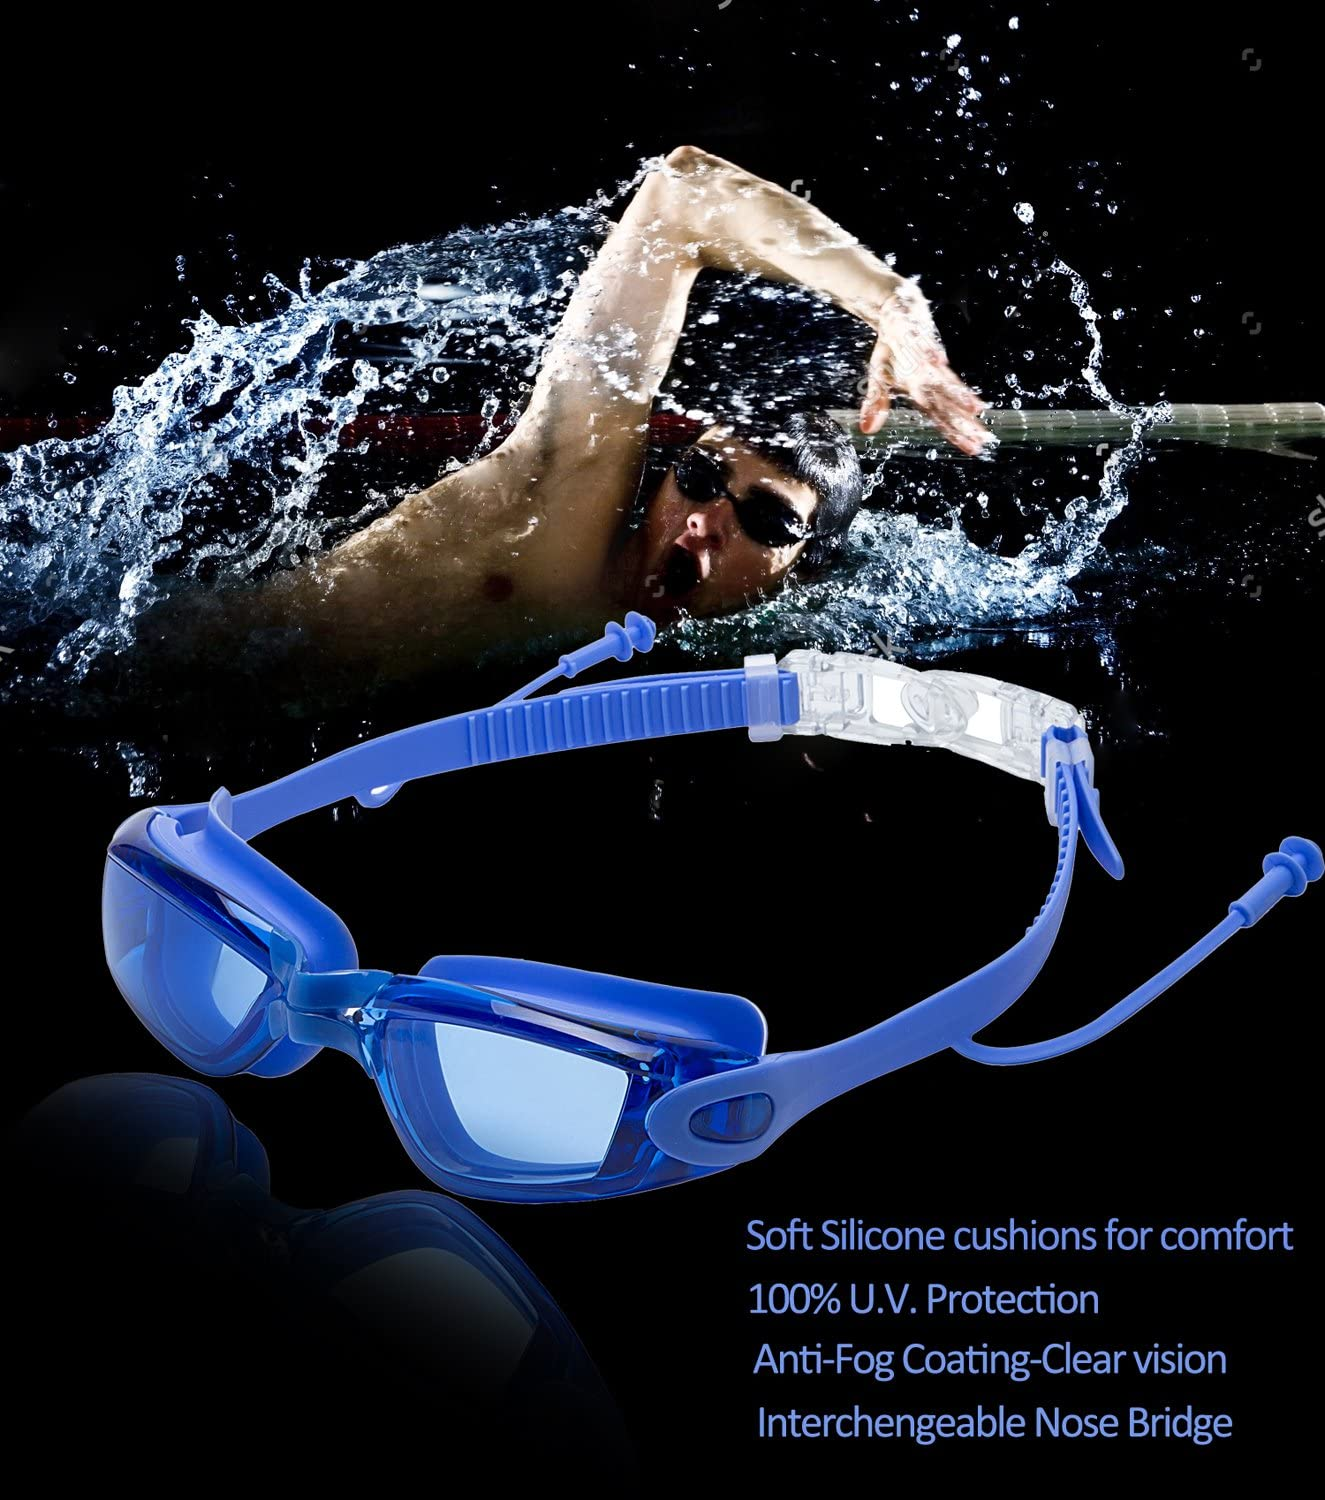 SBORTI Swim Goggles Swimming Goggles with Mirrored /& Waterproof Pack of 2 No Leaking Anti Fog UV Protection Swim Glasses Water Goggles Triathlon for Adult Men Women Youth Kids